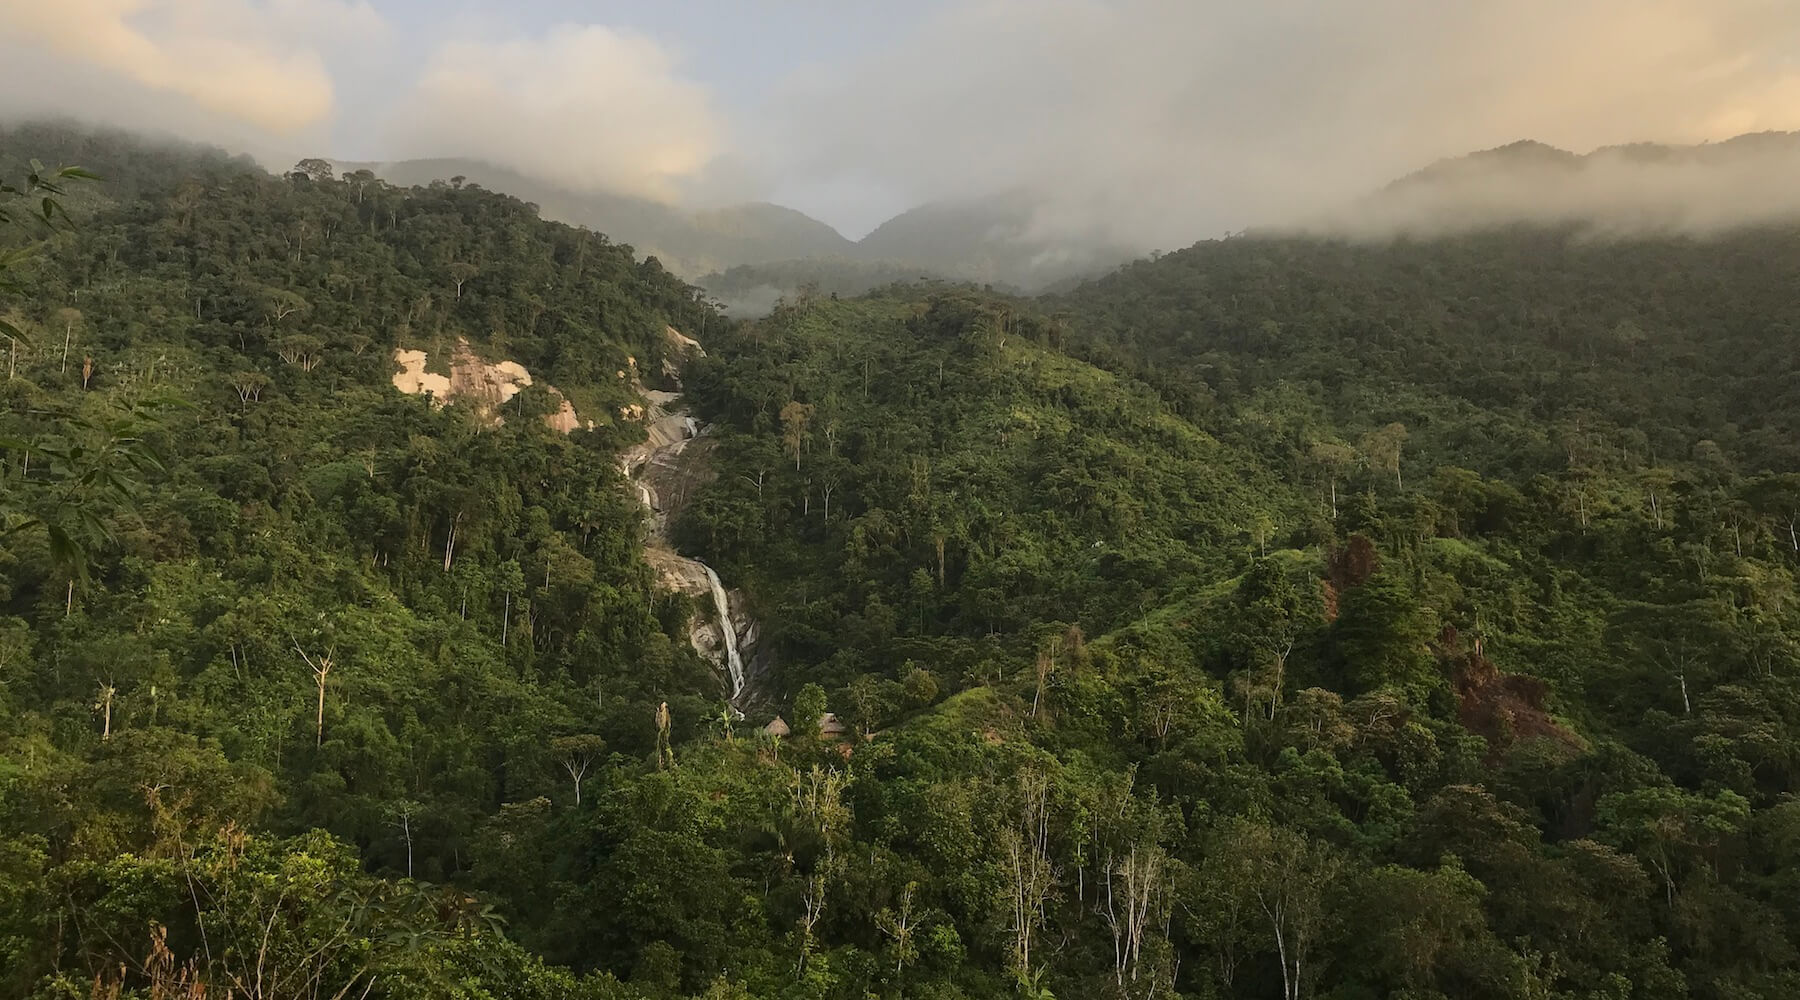 Colombia's Forests Left Vulnerable in the Wake of Civil War